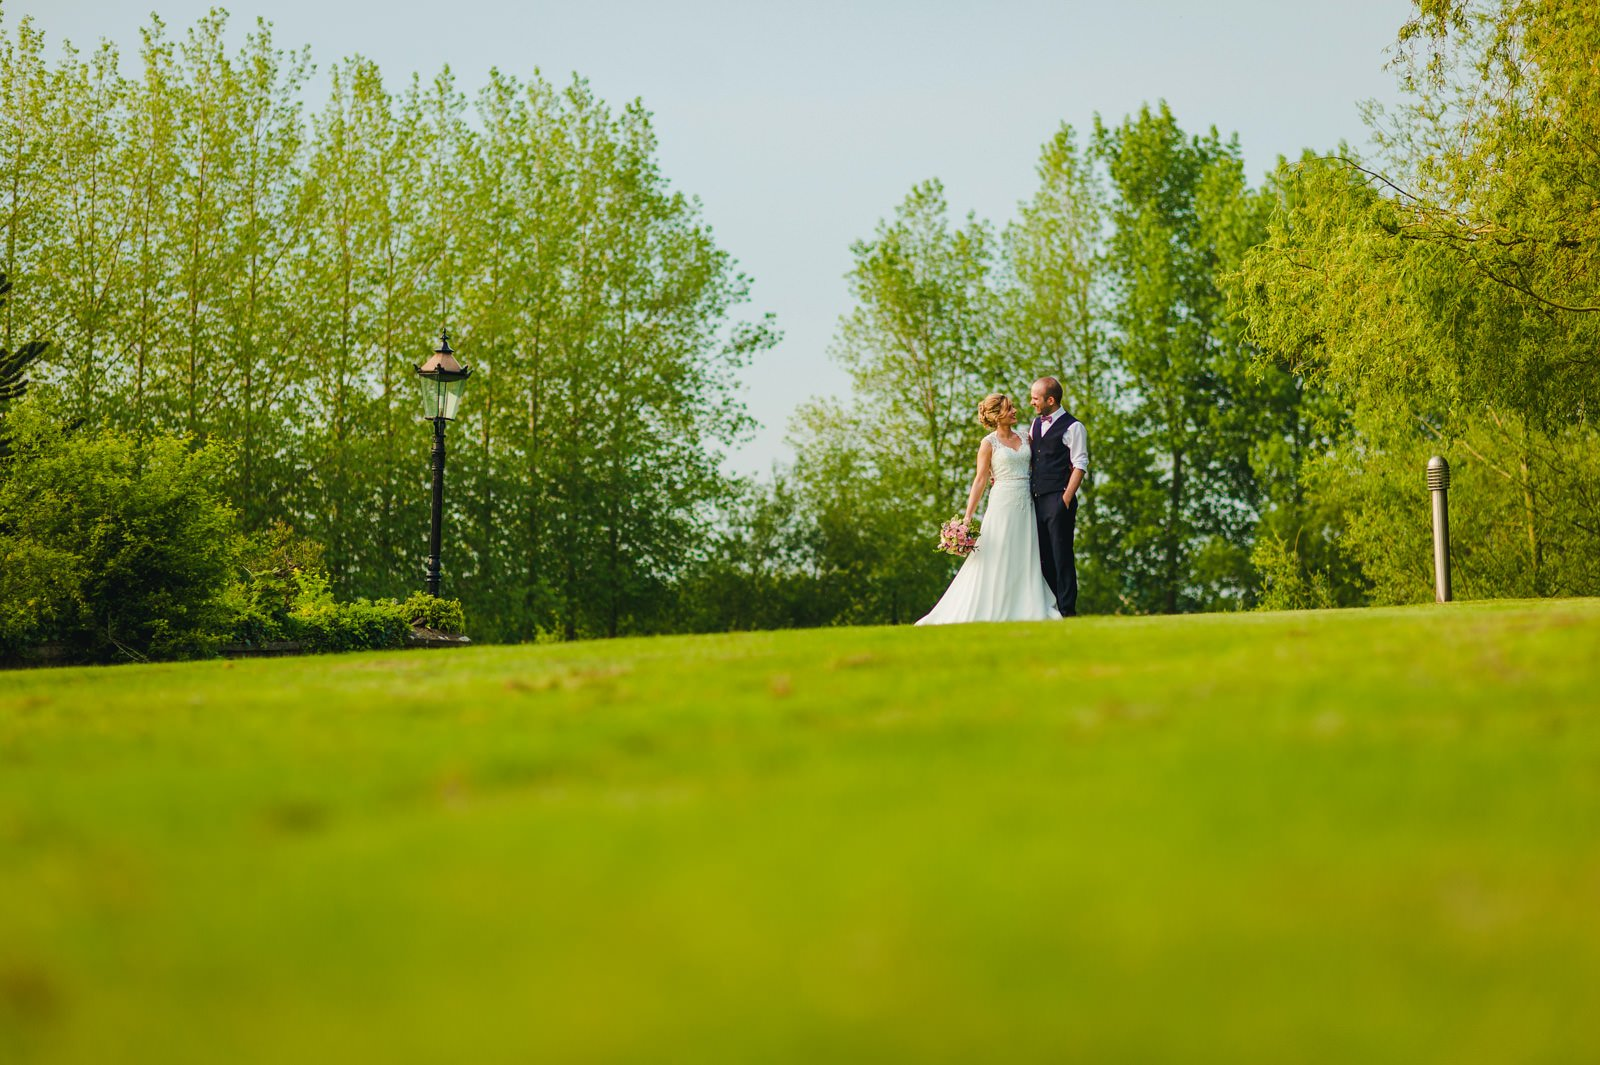 Millers Of Netley wedding, Dorrington, Shrewsbury | Emma + Ben 88